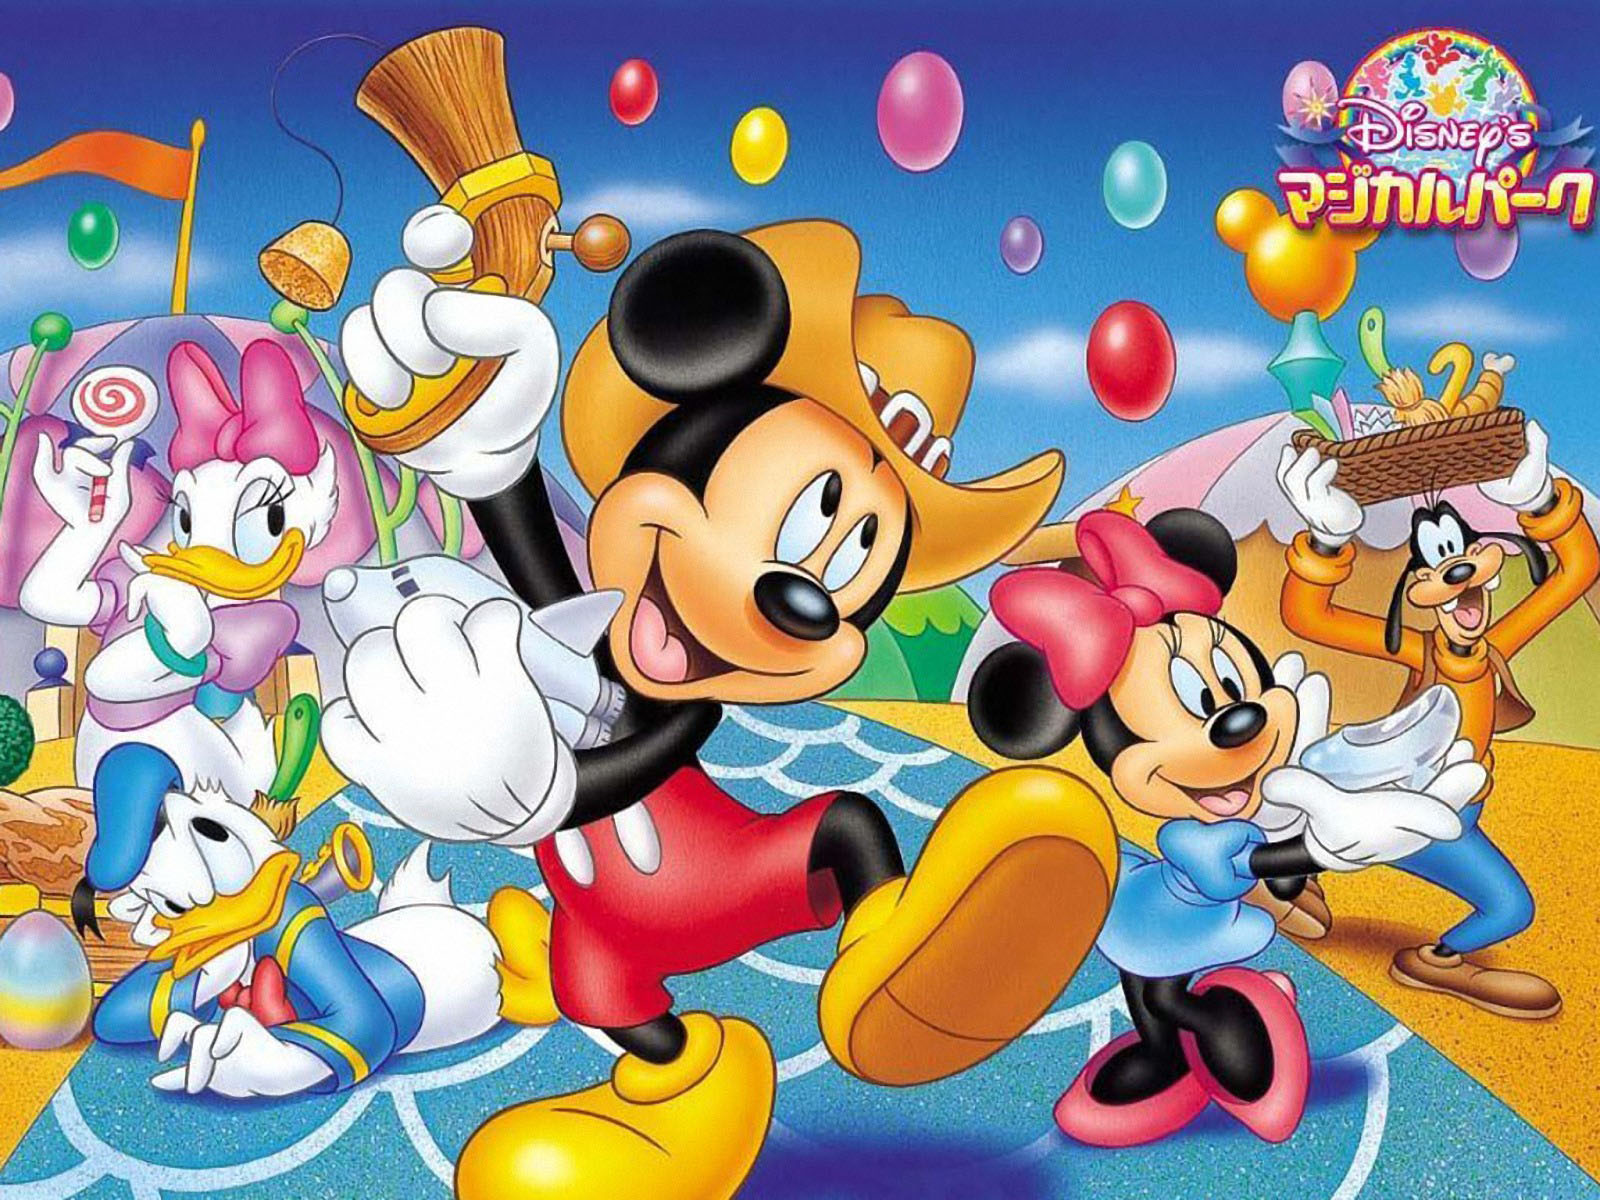 Mickey Mouse Hd Wallpapers Backgrounds Wallpaper 1600x1200